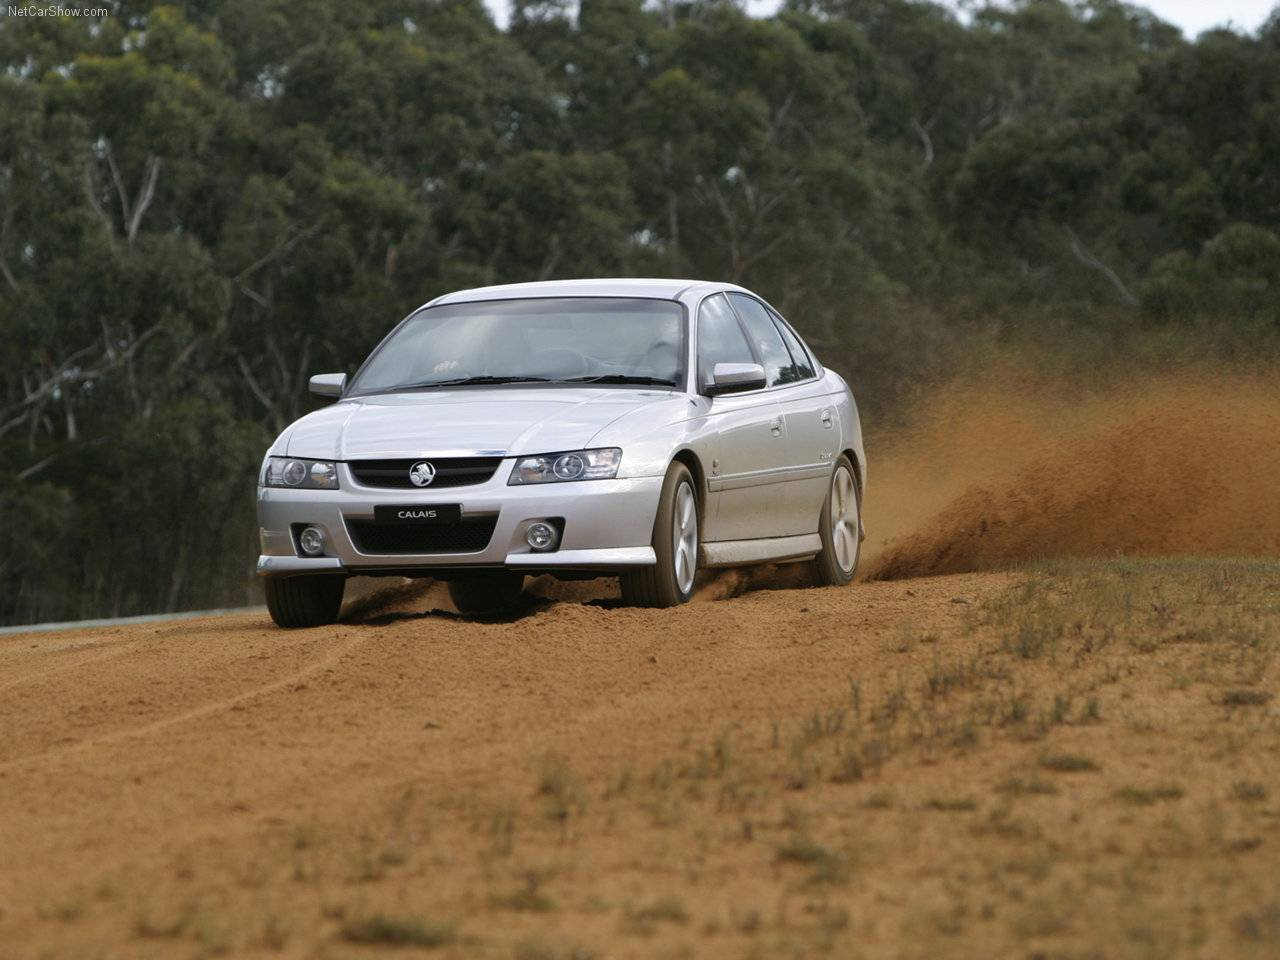 are ve commodore manual and auto diff the same